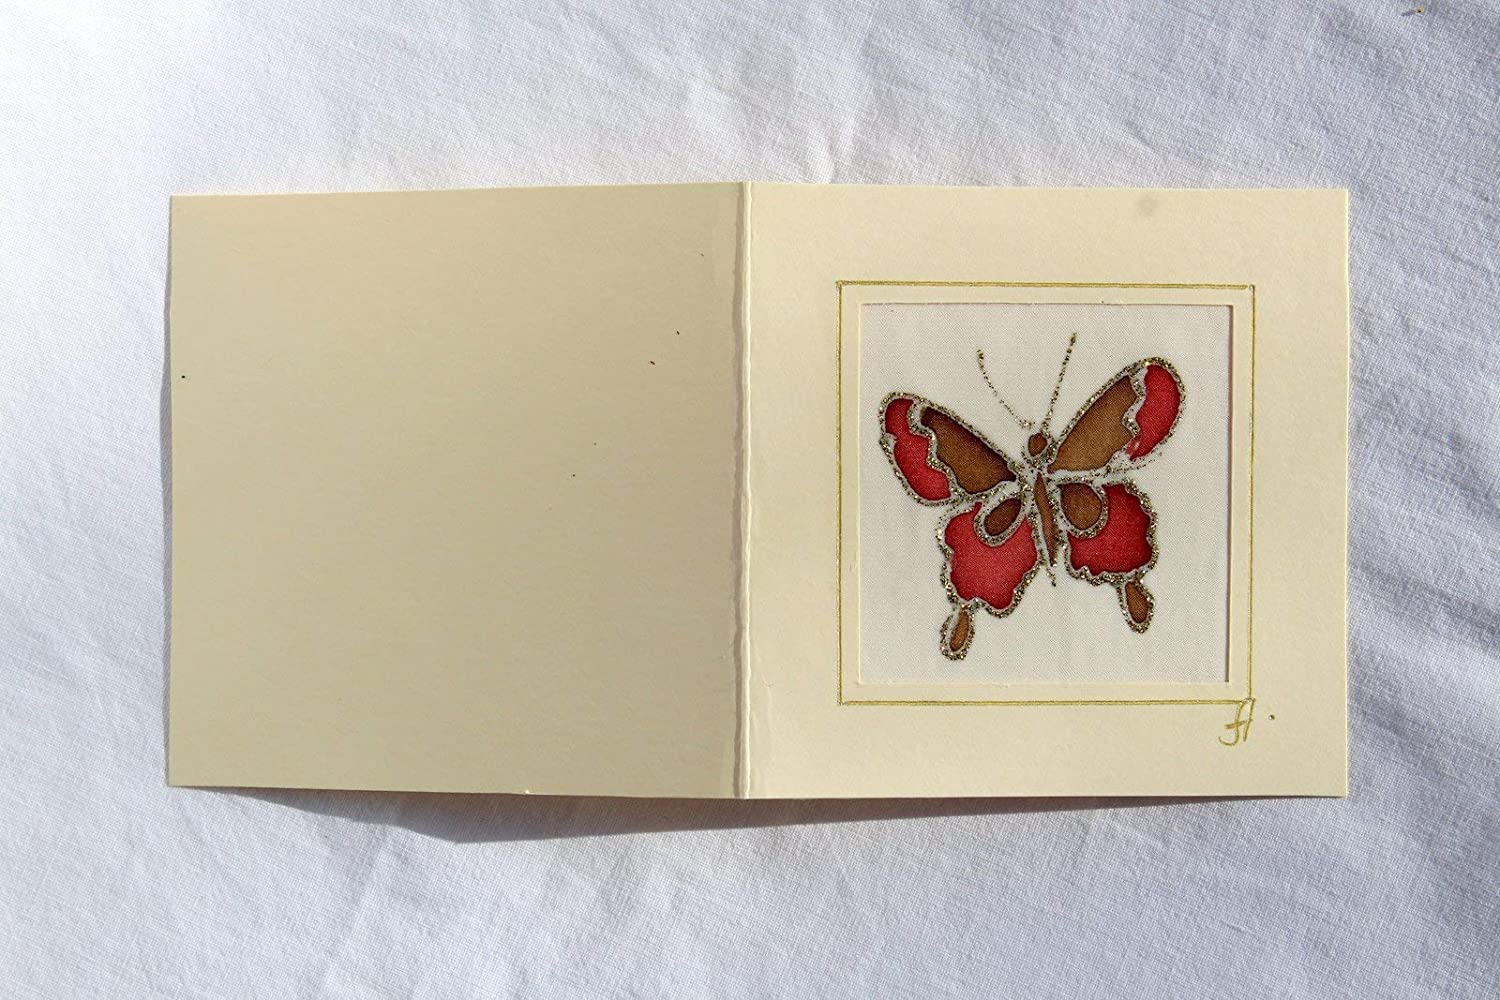 Hand Drawn Butterfly card,Red Butterfly,Acrylic Gift Butterfly,Original Batik Greeting Card,Hand Painted Butterfly Silk Card,Champagne color Butterfly Card,Unique Handmade